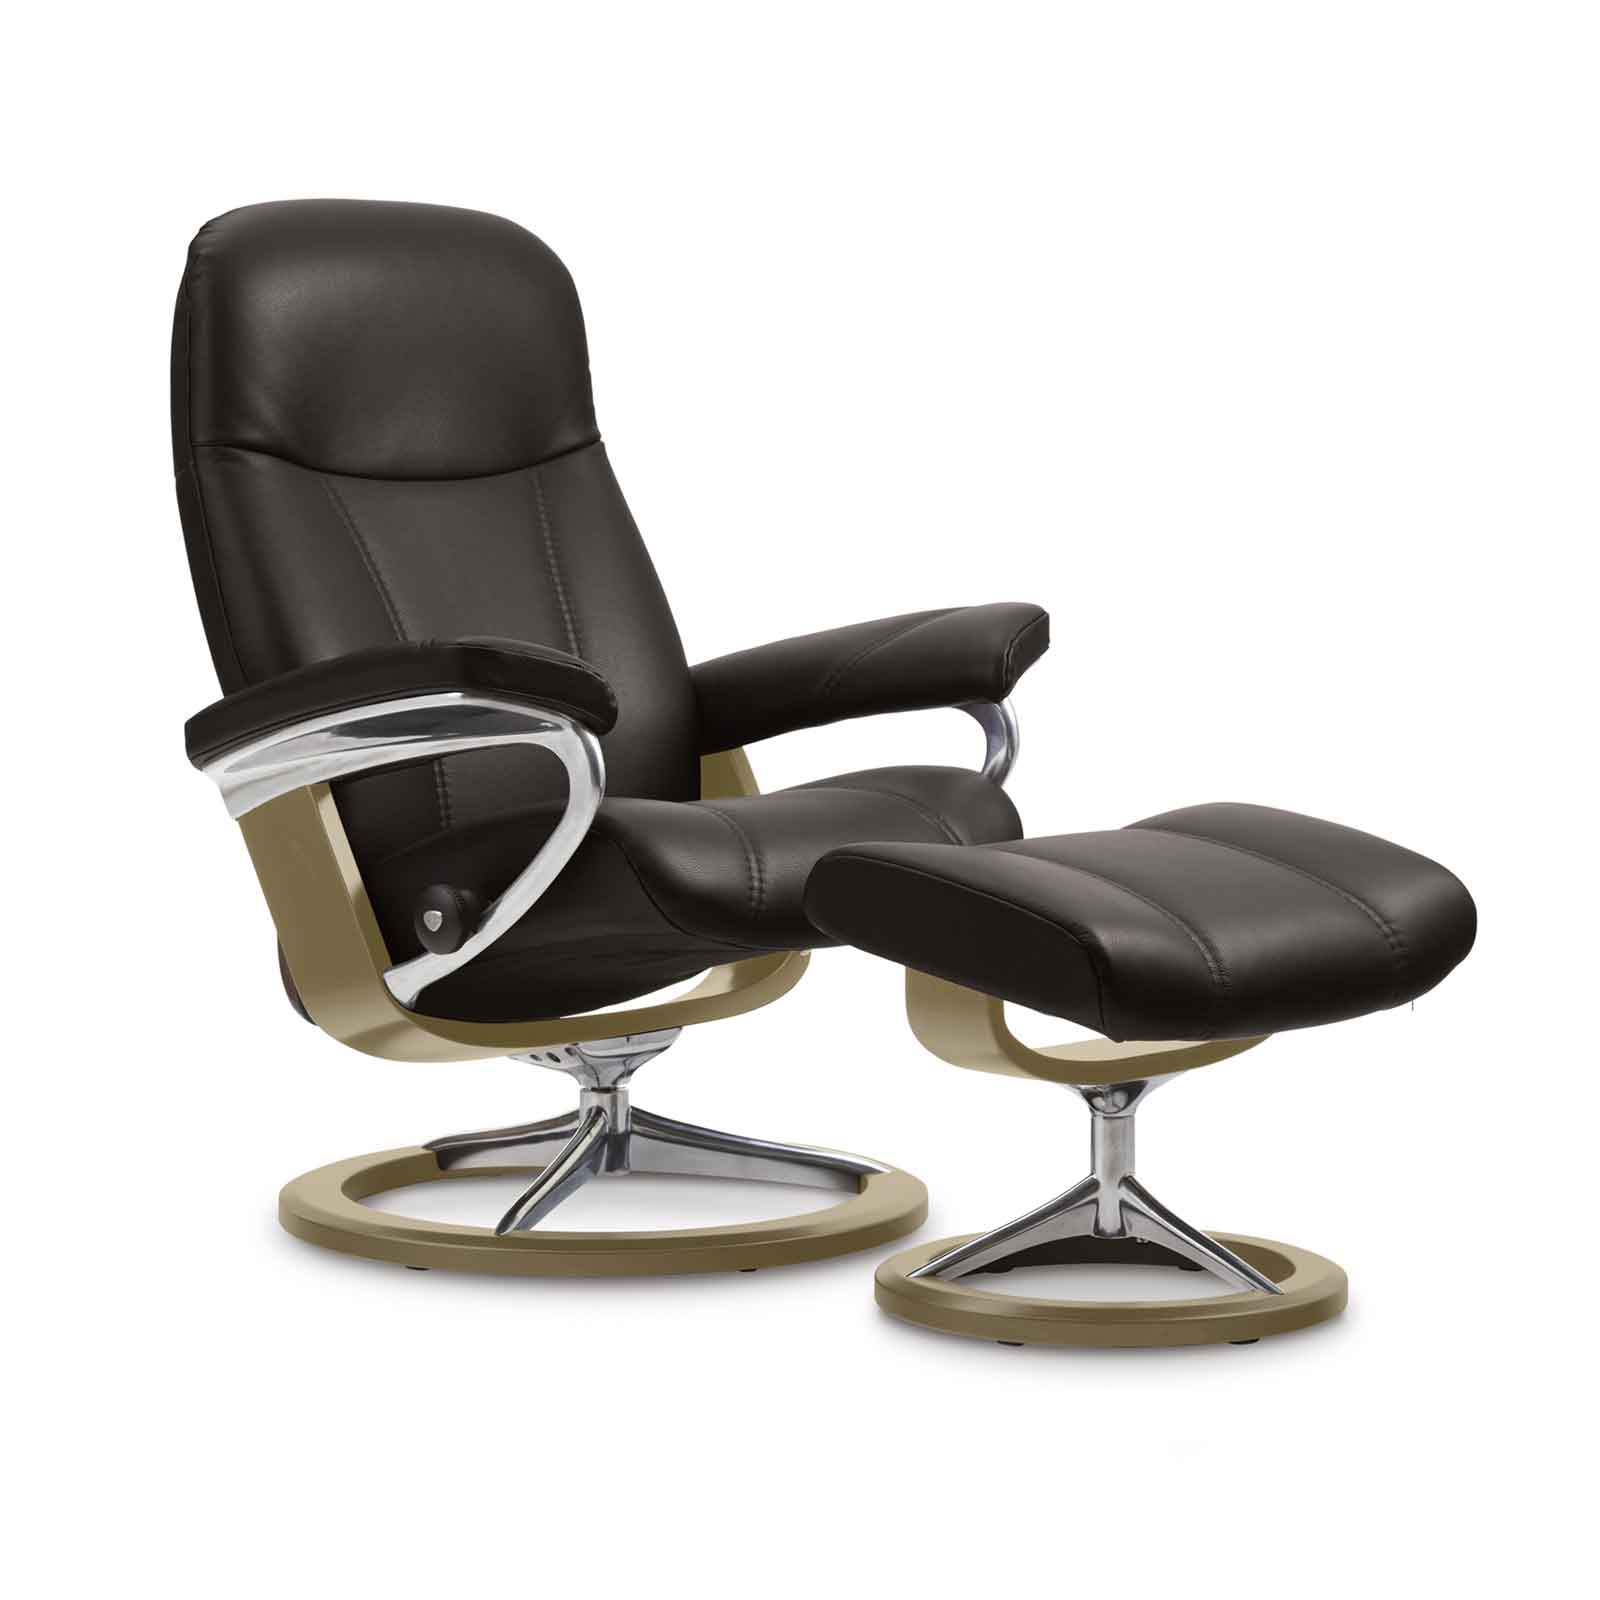 Stressless Sessel Consul M Stressless Sessel Consul Zuhause Image Idee